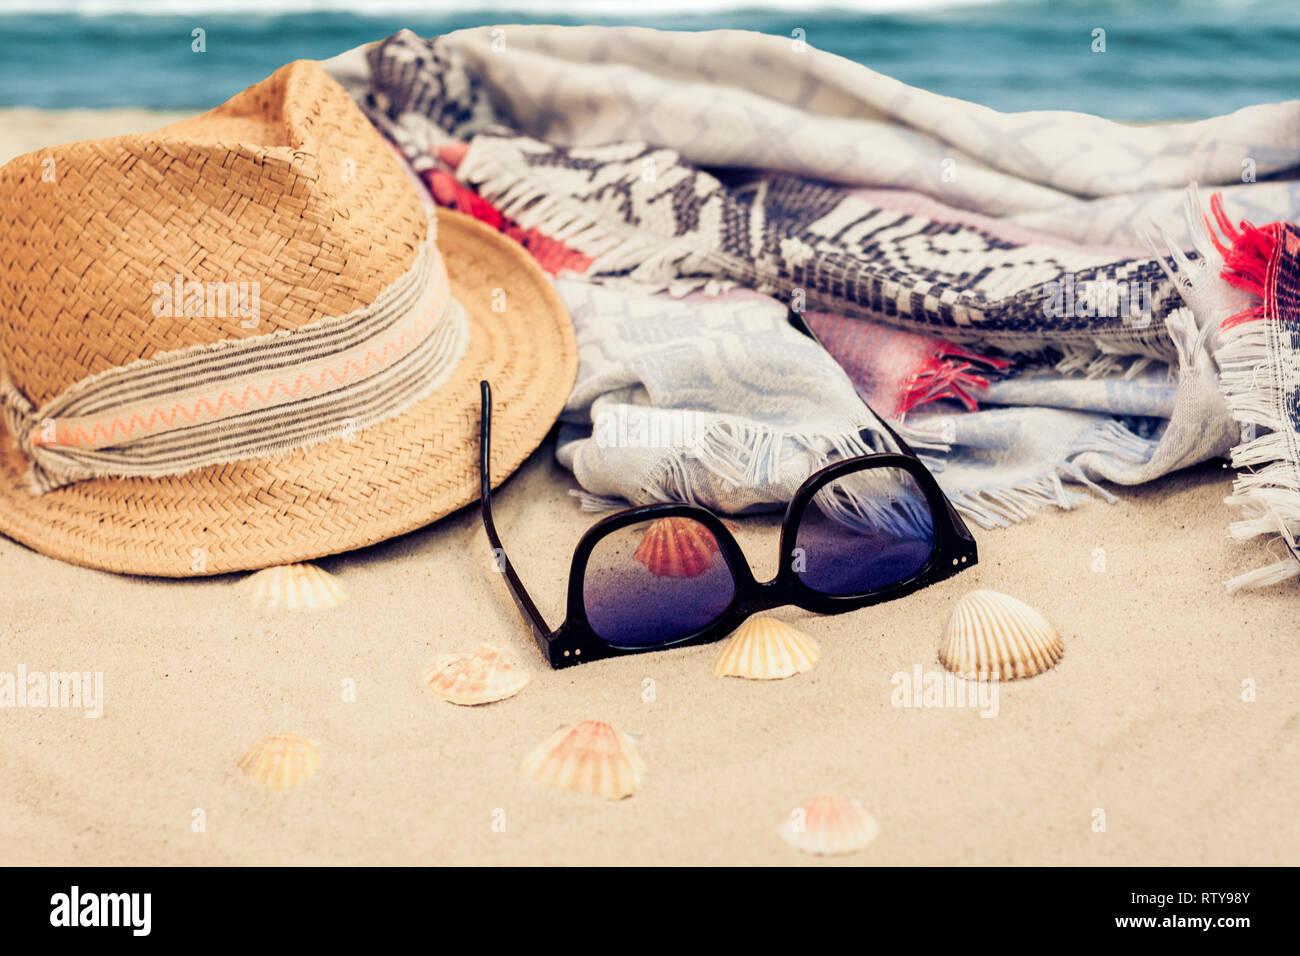 94dfd87c Straw hat, cover-up beachwear wrap and sun glasses on a tropical beach -